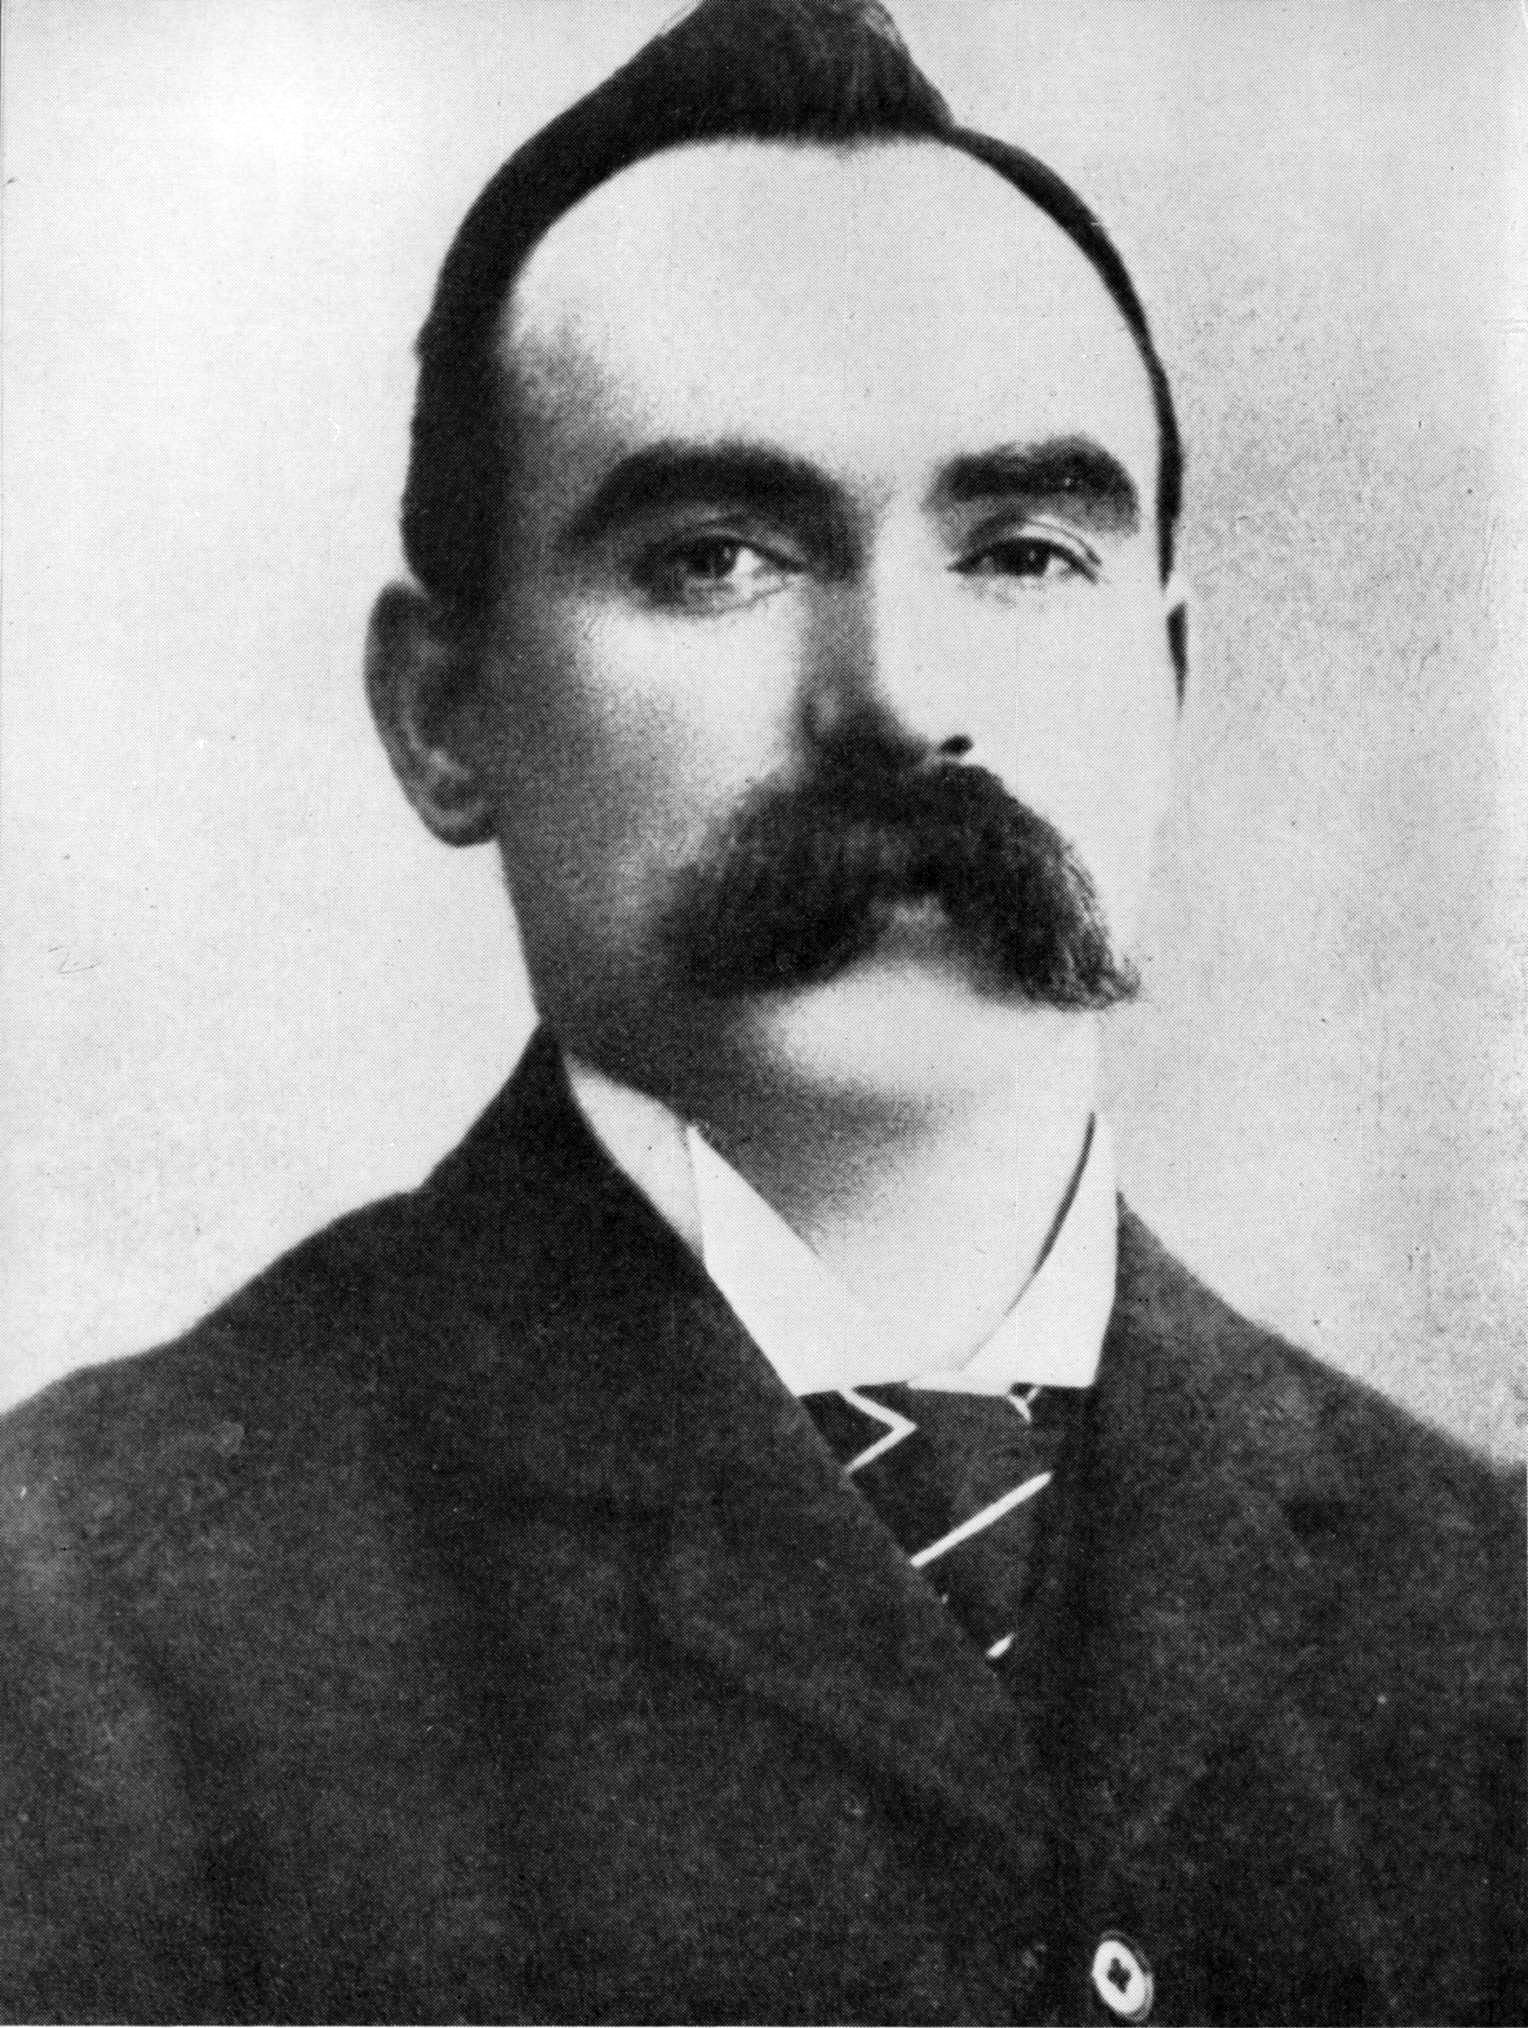 James Connolly Net Worth